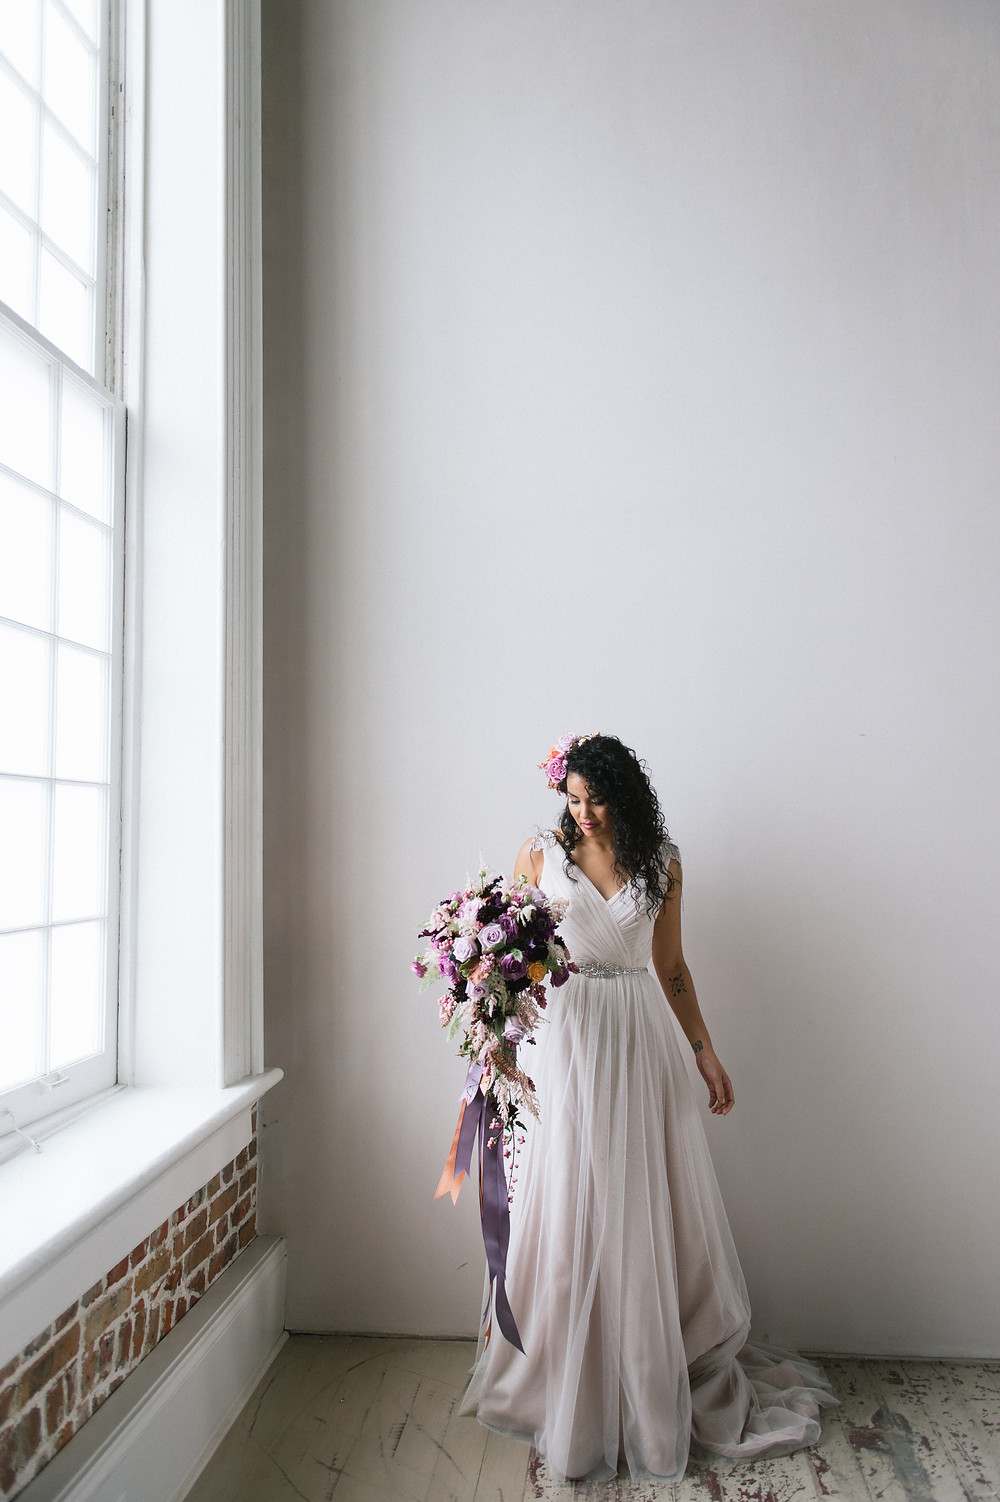 New Orleans' Purple & Copper Style Shoot with Lauren Carroll Photography, Weddings by LuLu, Bee's Wedding and Events Floral Designs, Felicity Church, and Lovegood Wedding & Event Rentals